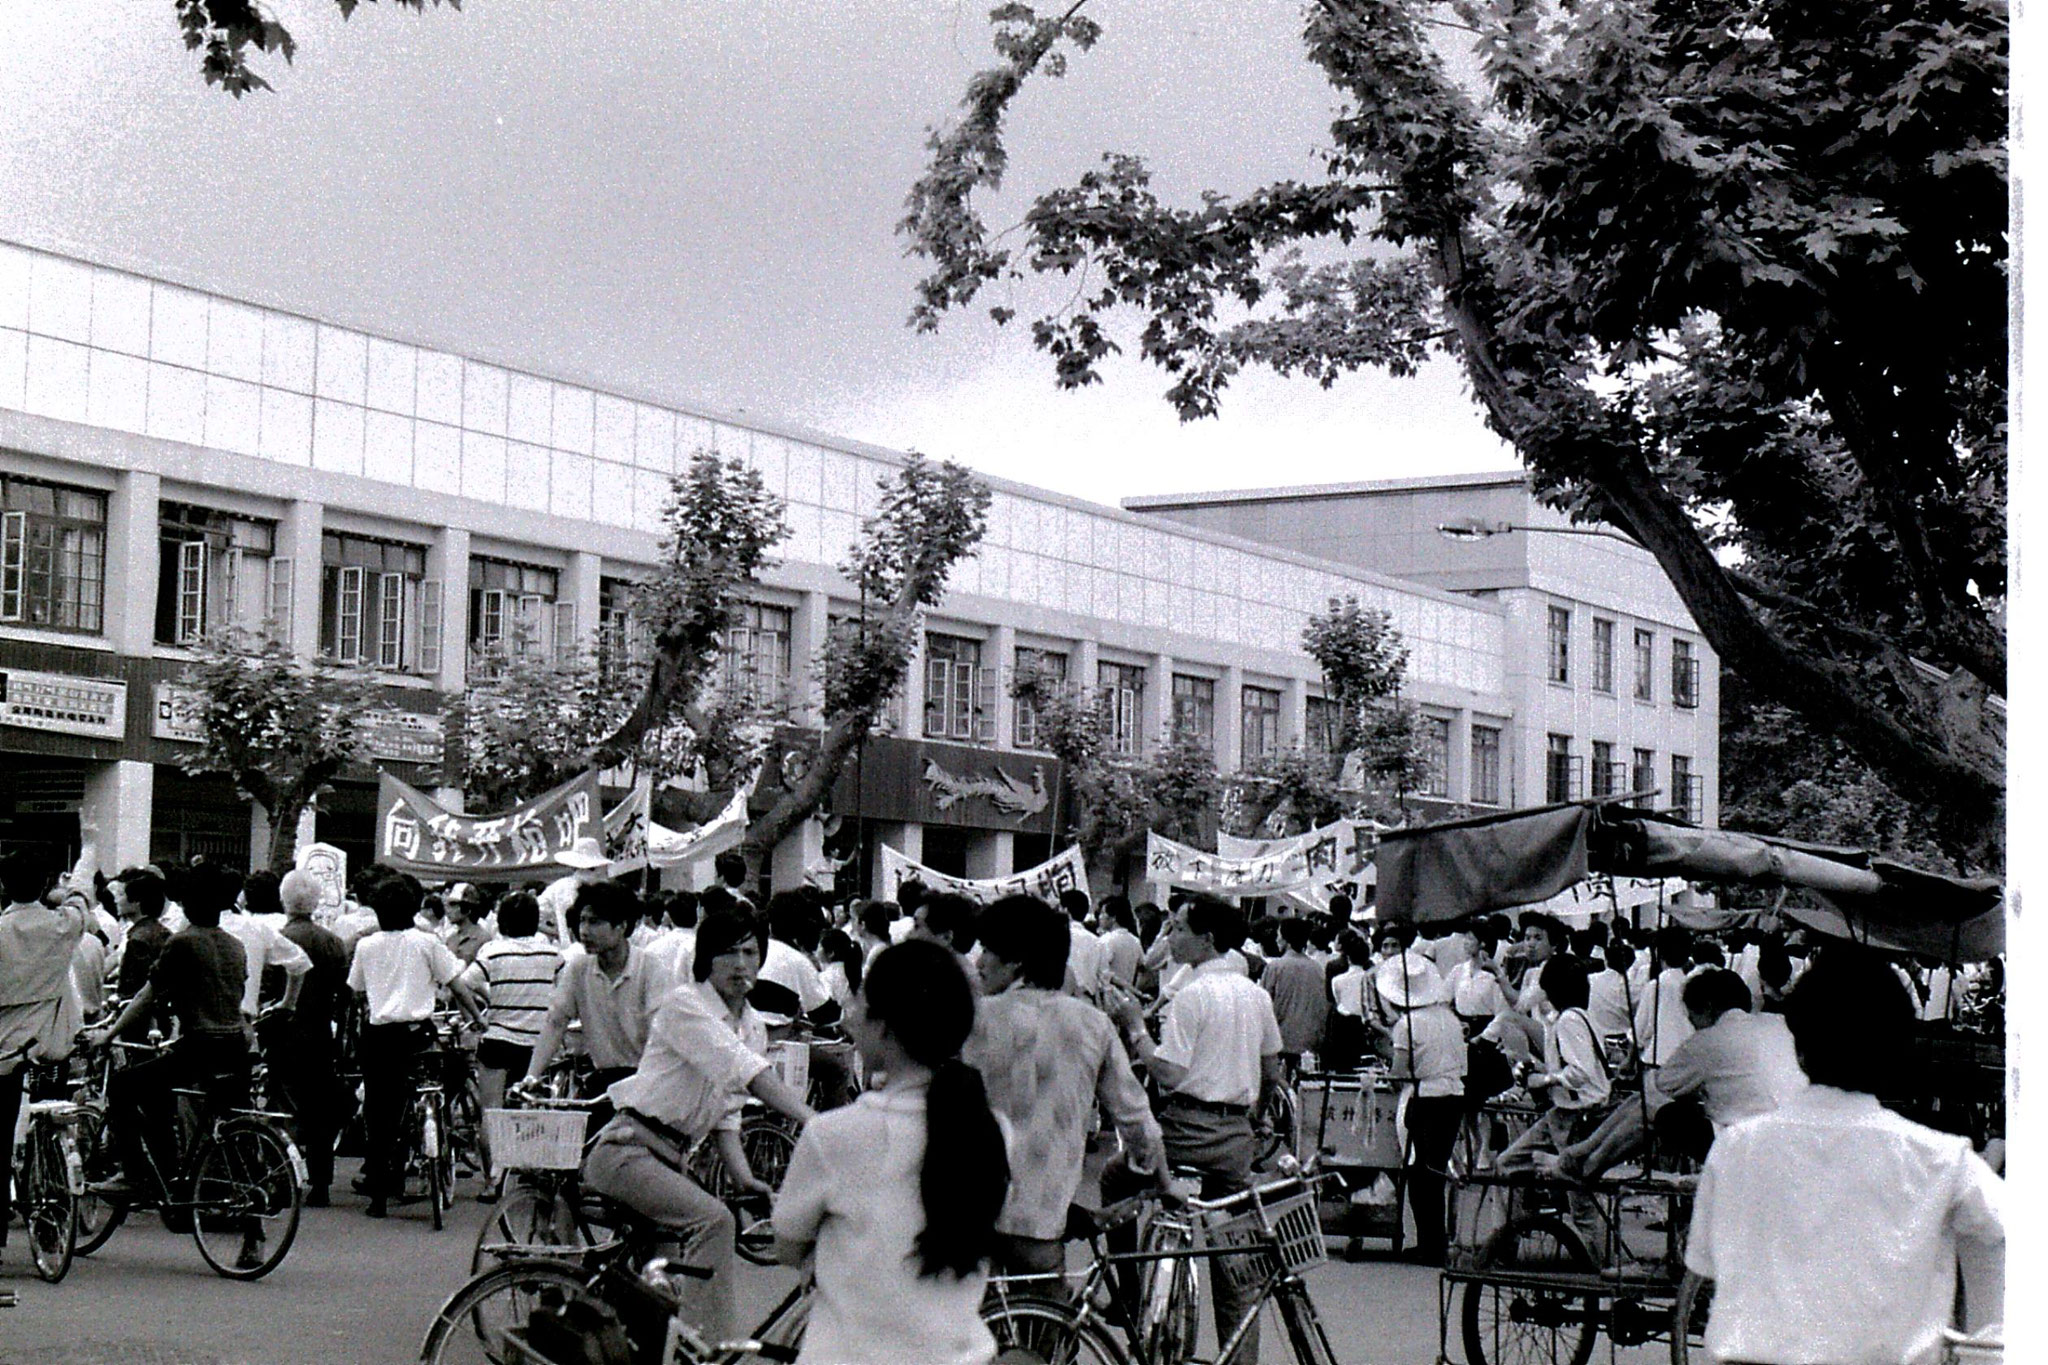 6/6/1989: 31: demonstrations around Hangzhou